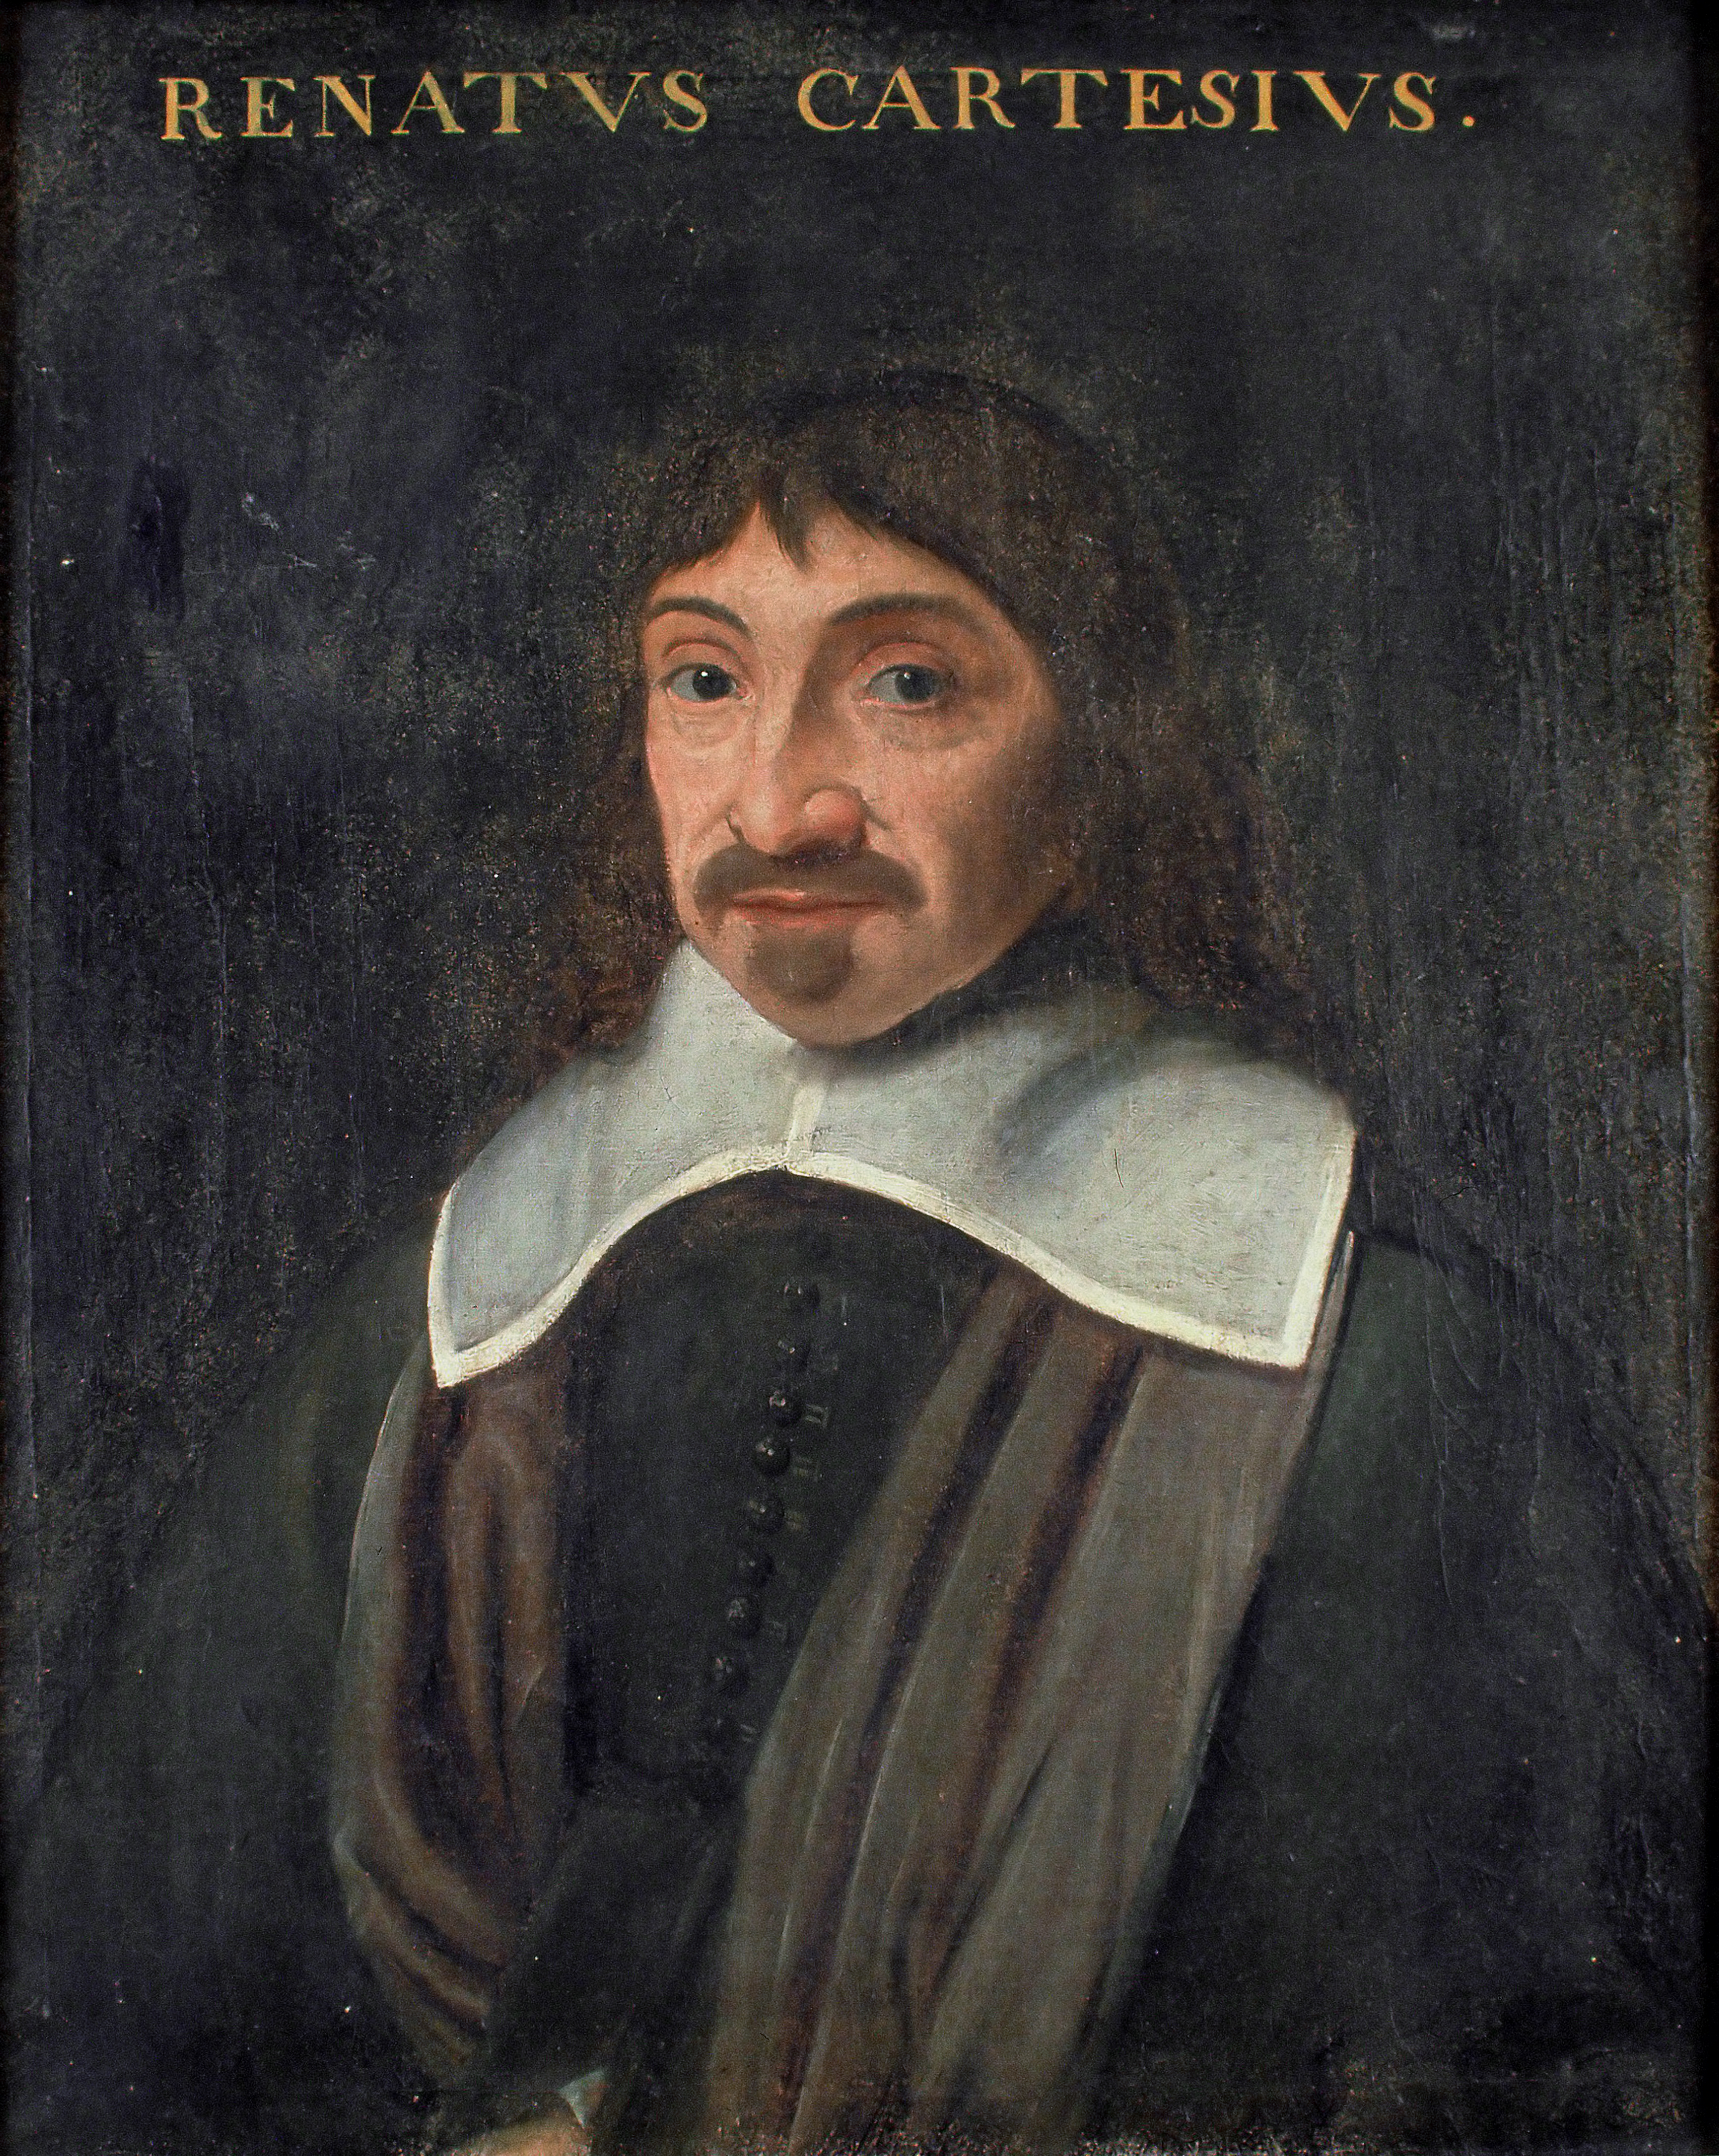 an analysis of the popular ideologies of rene descartes and john searle John searle: welcome, sir rene descartes i went through your work meditations on first philosophy, but i do not agree with your theory of dualism because you say that mind and body are different entities.